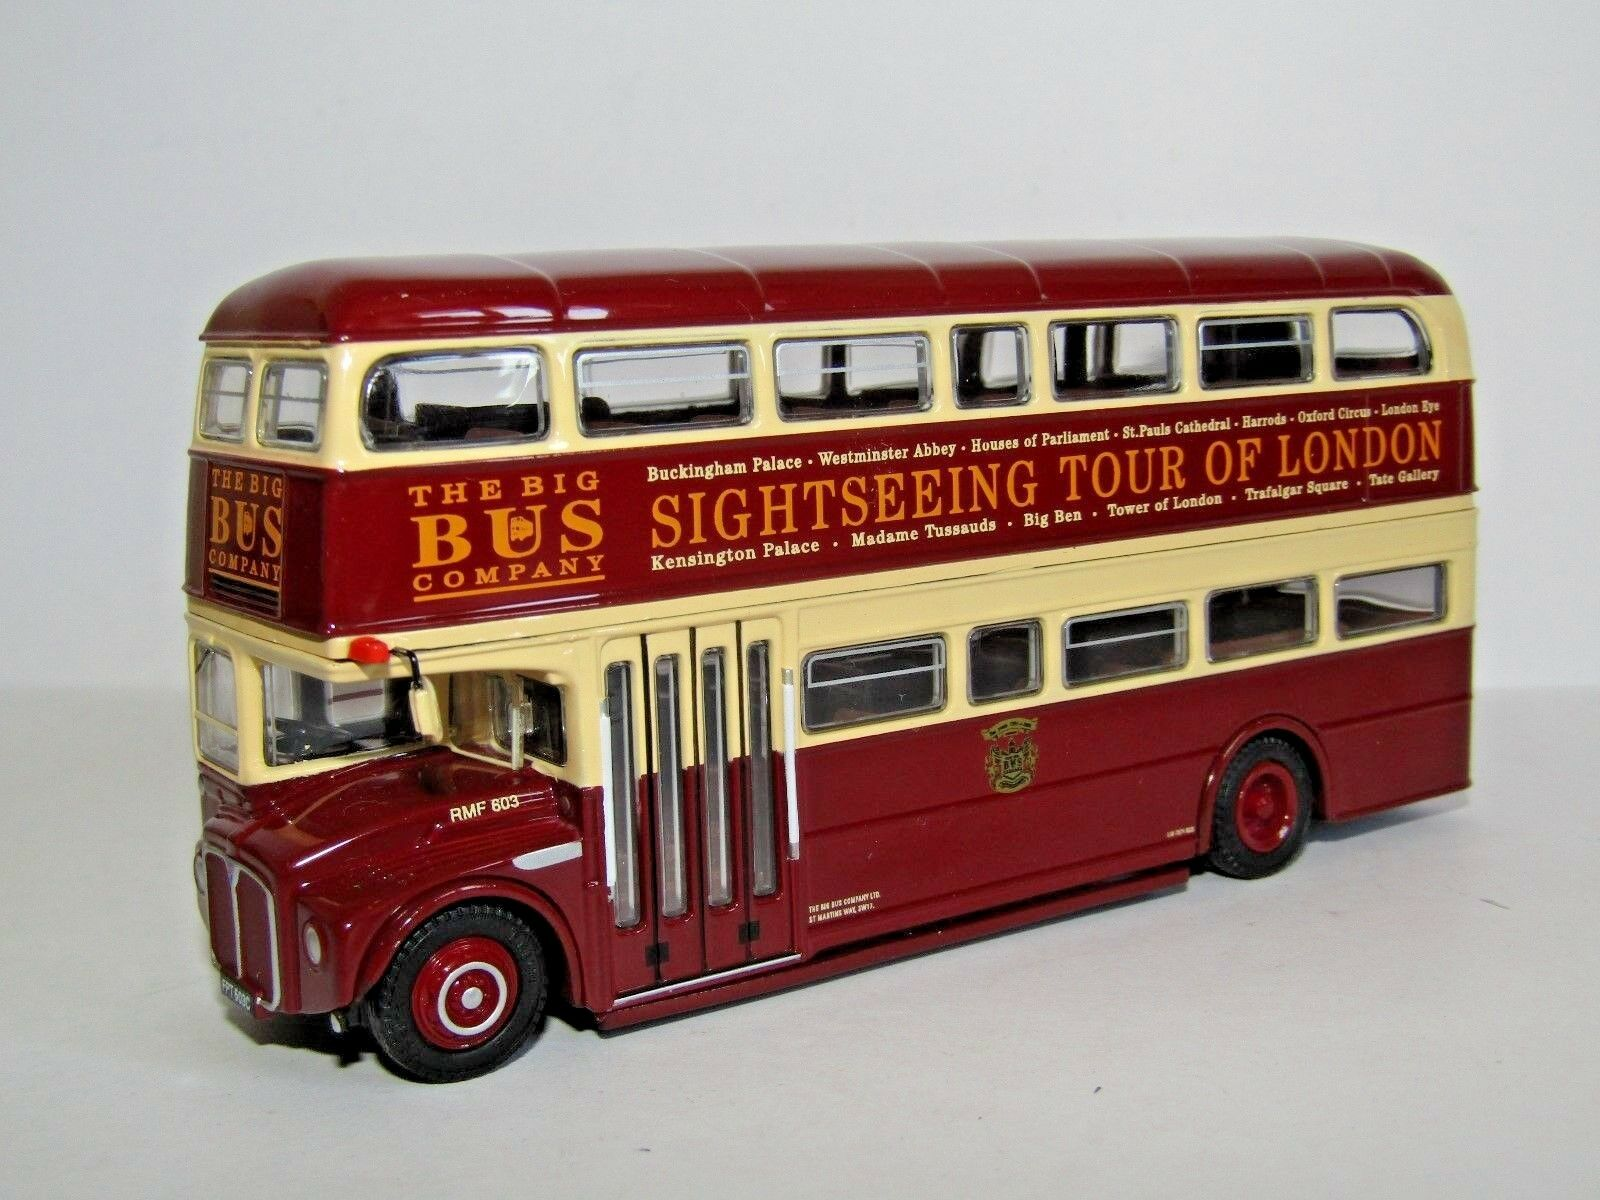 EFE RMF ROUTEMASTER BUS BIG BUS COMPANY LONDON TOUR 1 76 32104